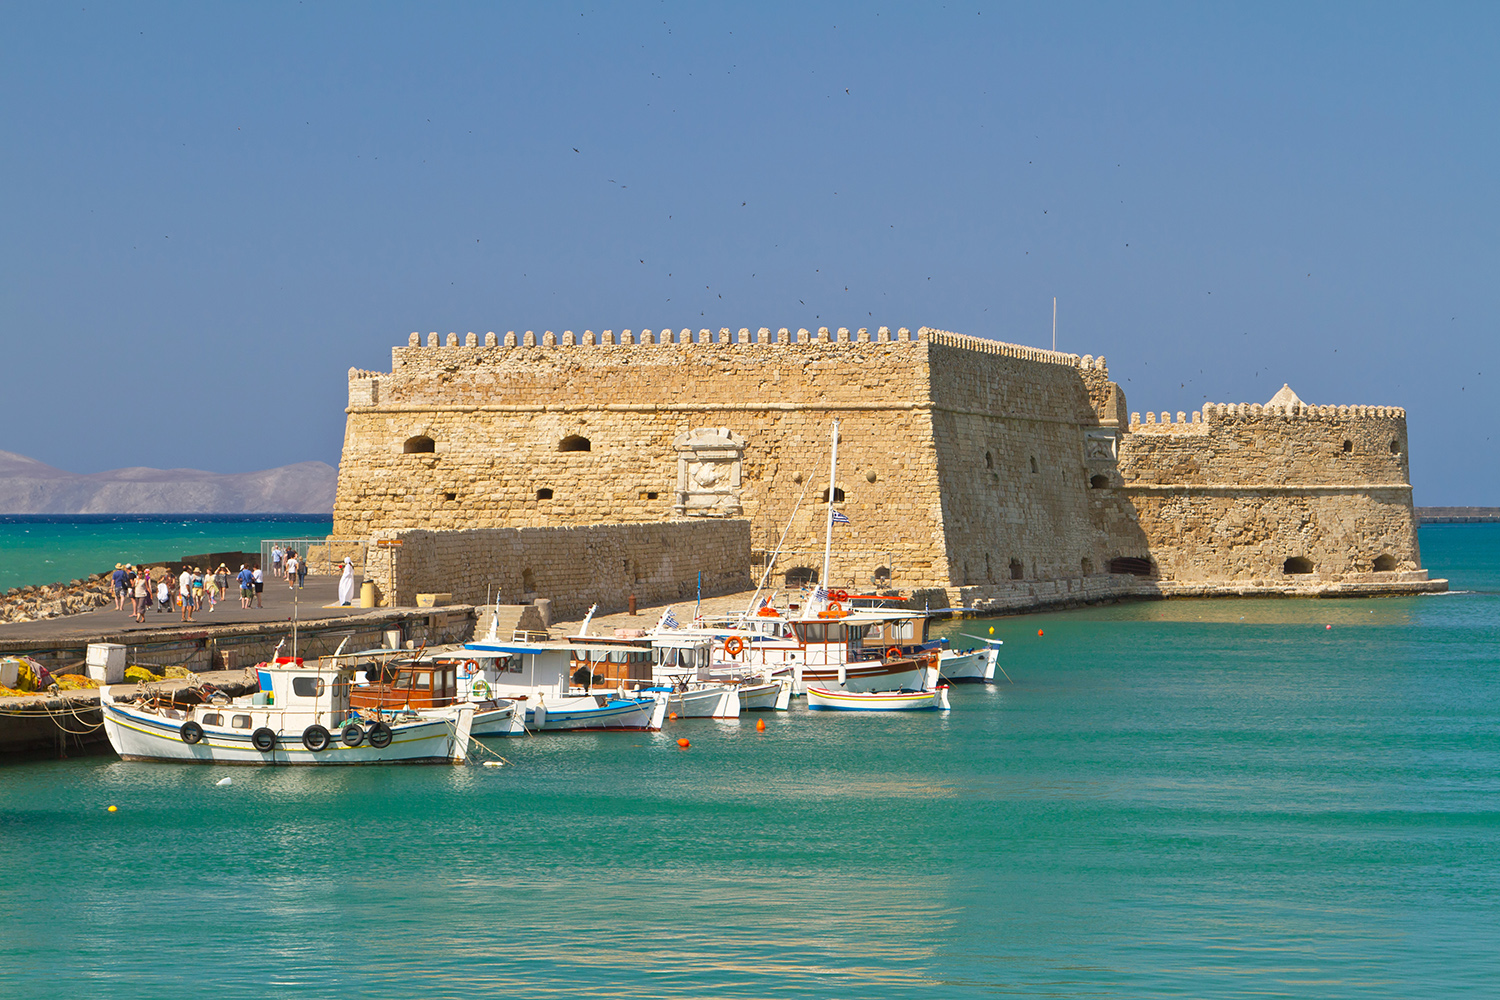 Must-see: Koules Fortress in Heraklion